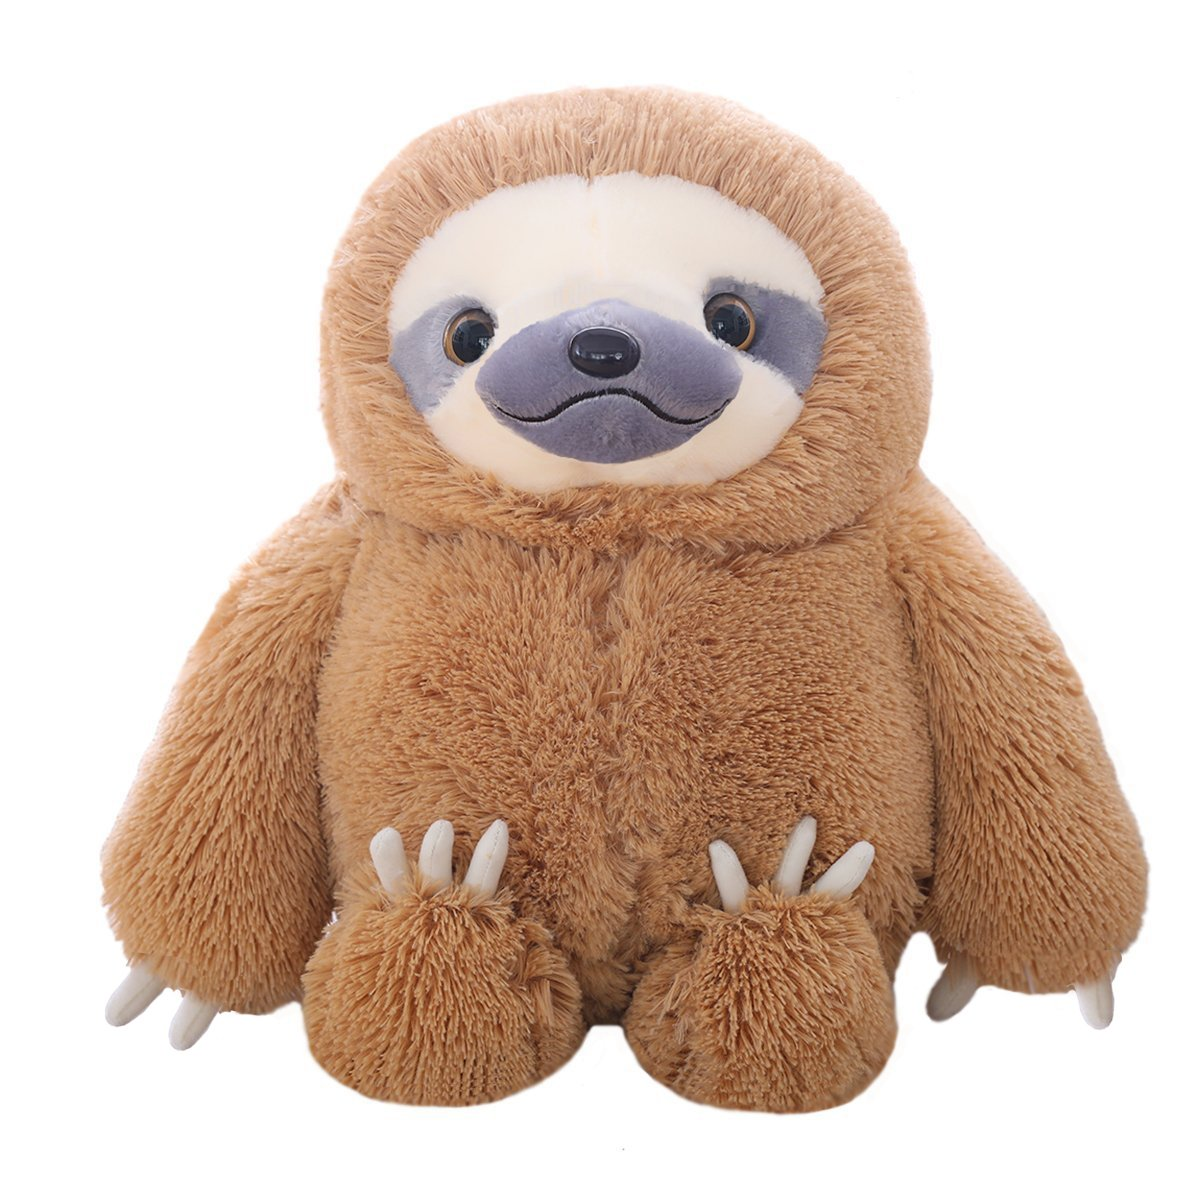 Winsterch Kids Stuffed Sloth Toy Giant Sloth Bear Plush Sloth Stuffed Animal Toy Baby Doll Kids Gift Birthday, 19.7 inches' 19.7 inches'